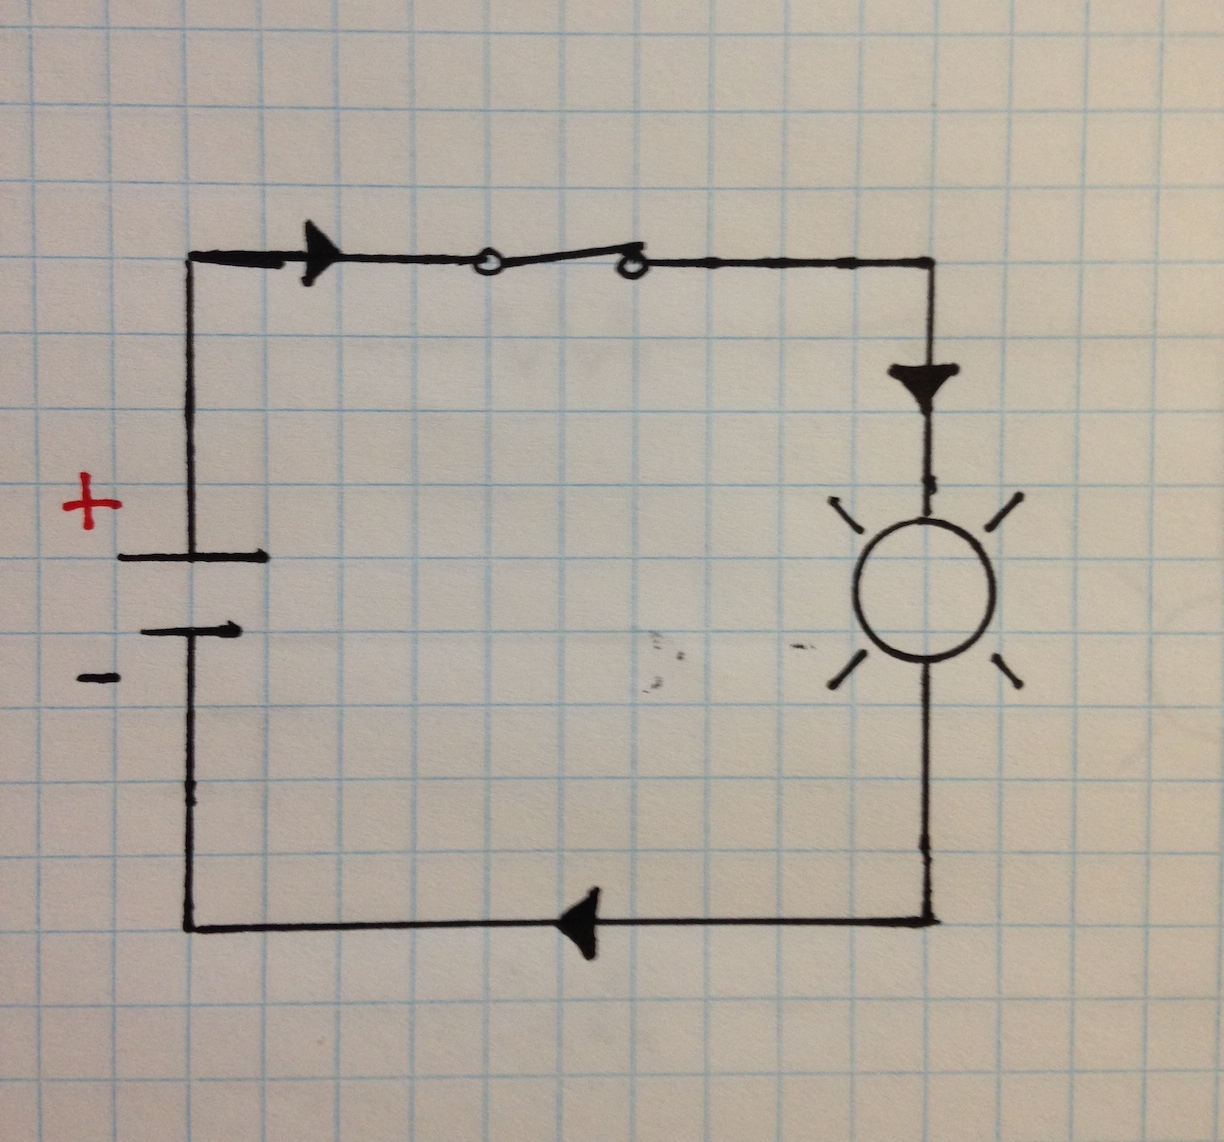 Basic Electrical Theory: Understanding Electricity